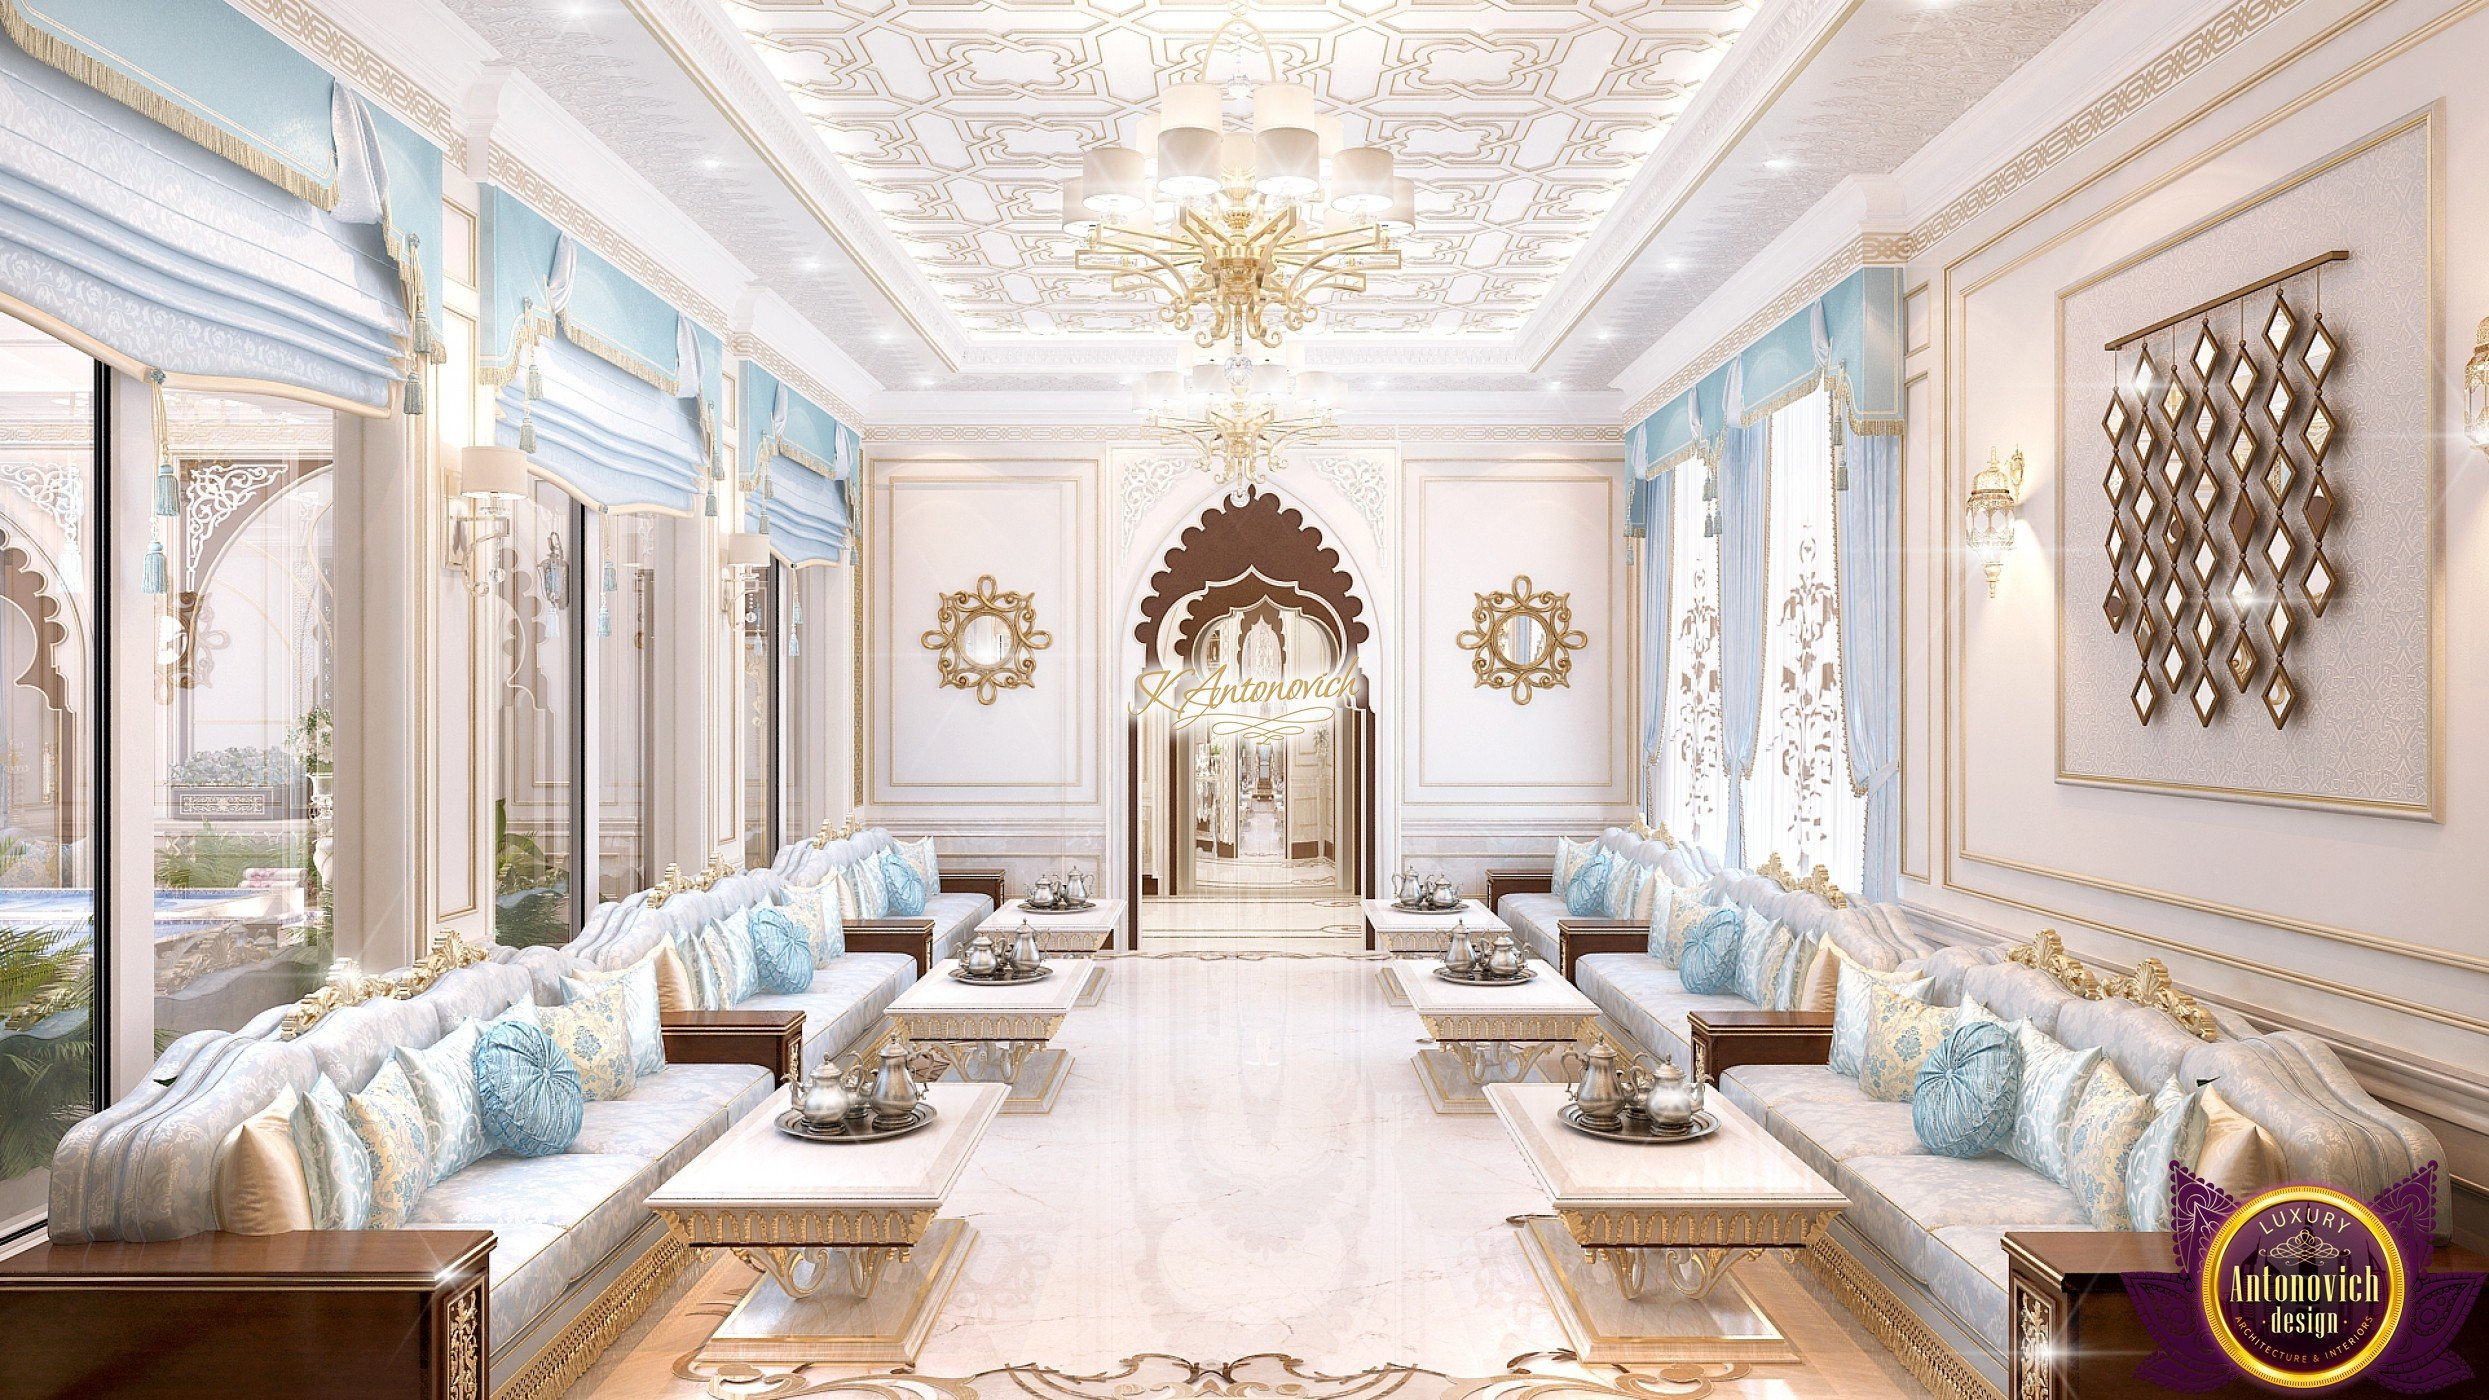 Classic luxury modern majlis design in saudi arabia -  Contemporary Living Room Other Metro Our Works Majlis Interior Design Arabic Majlis In Saudi Arabia L